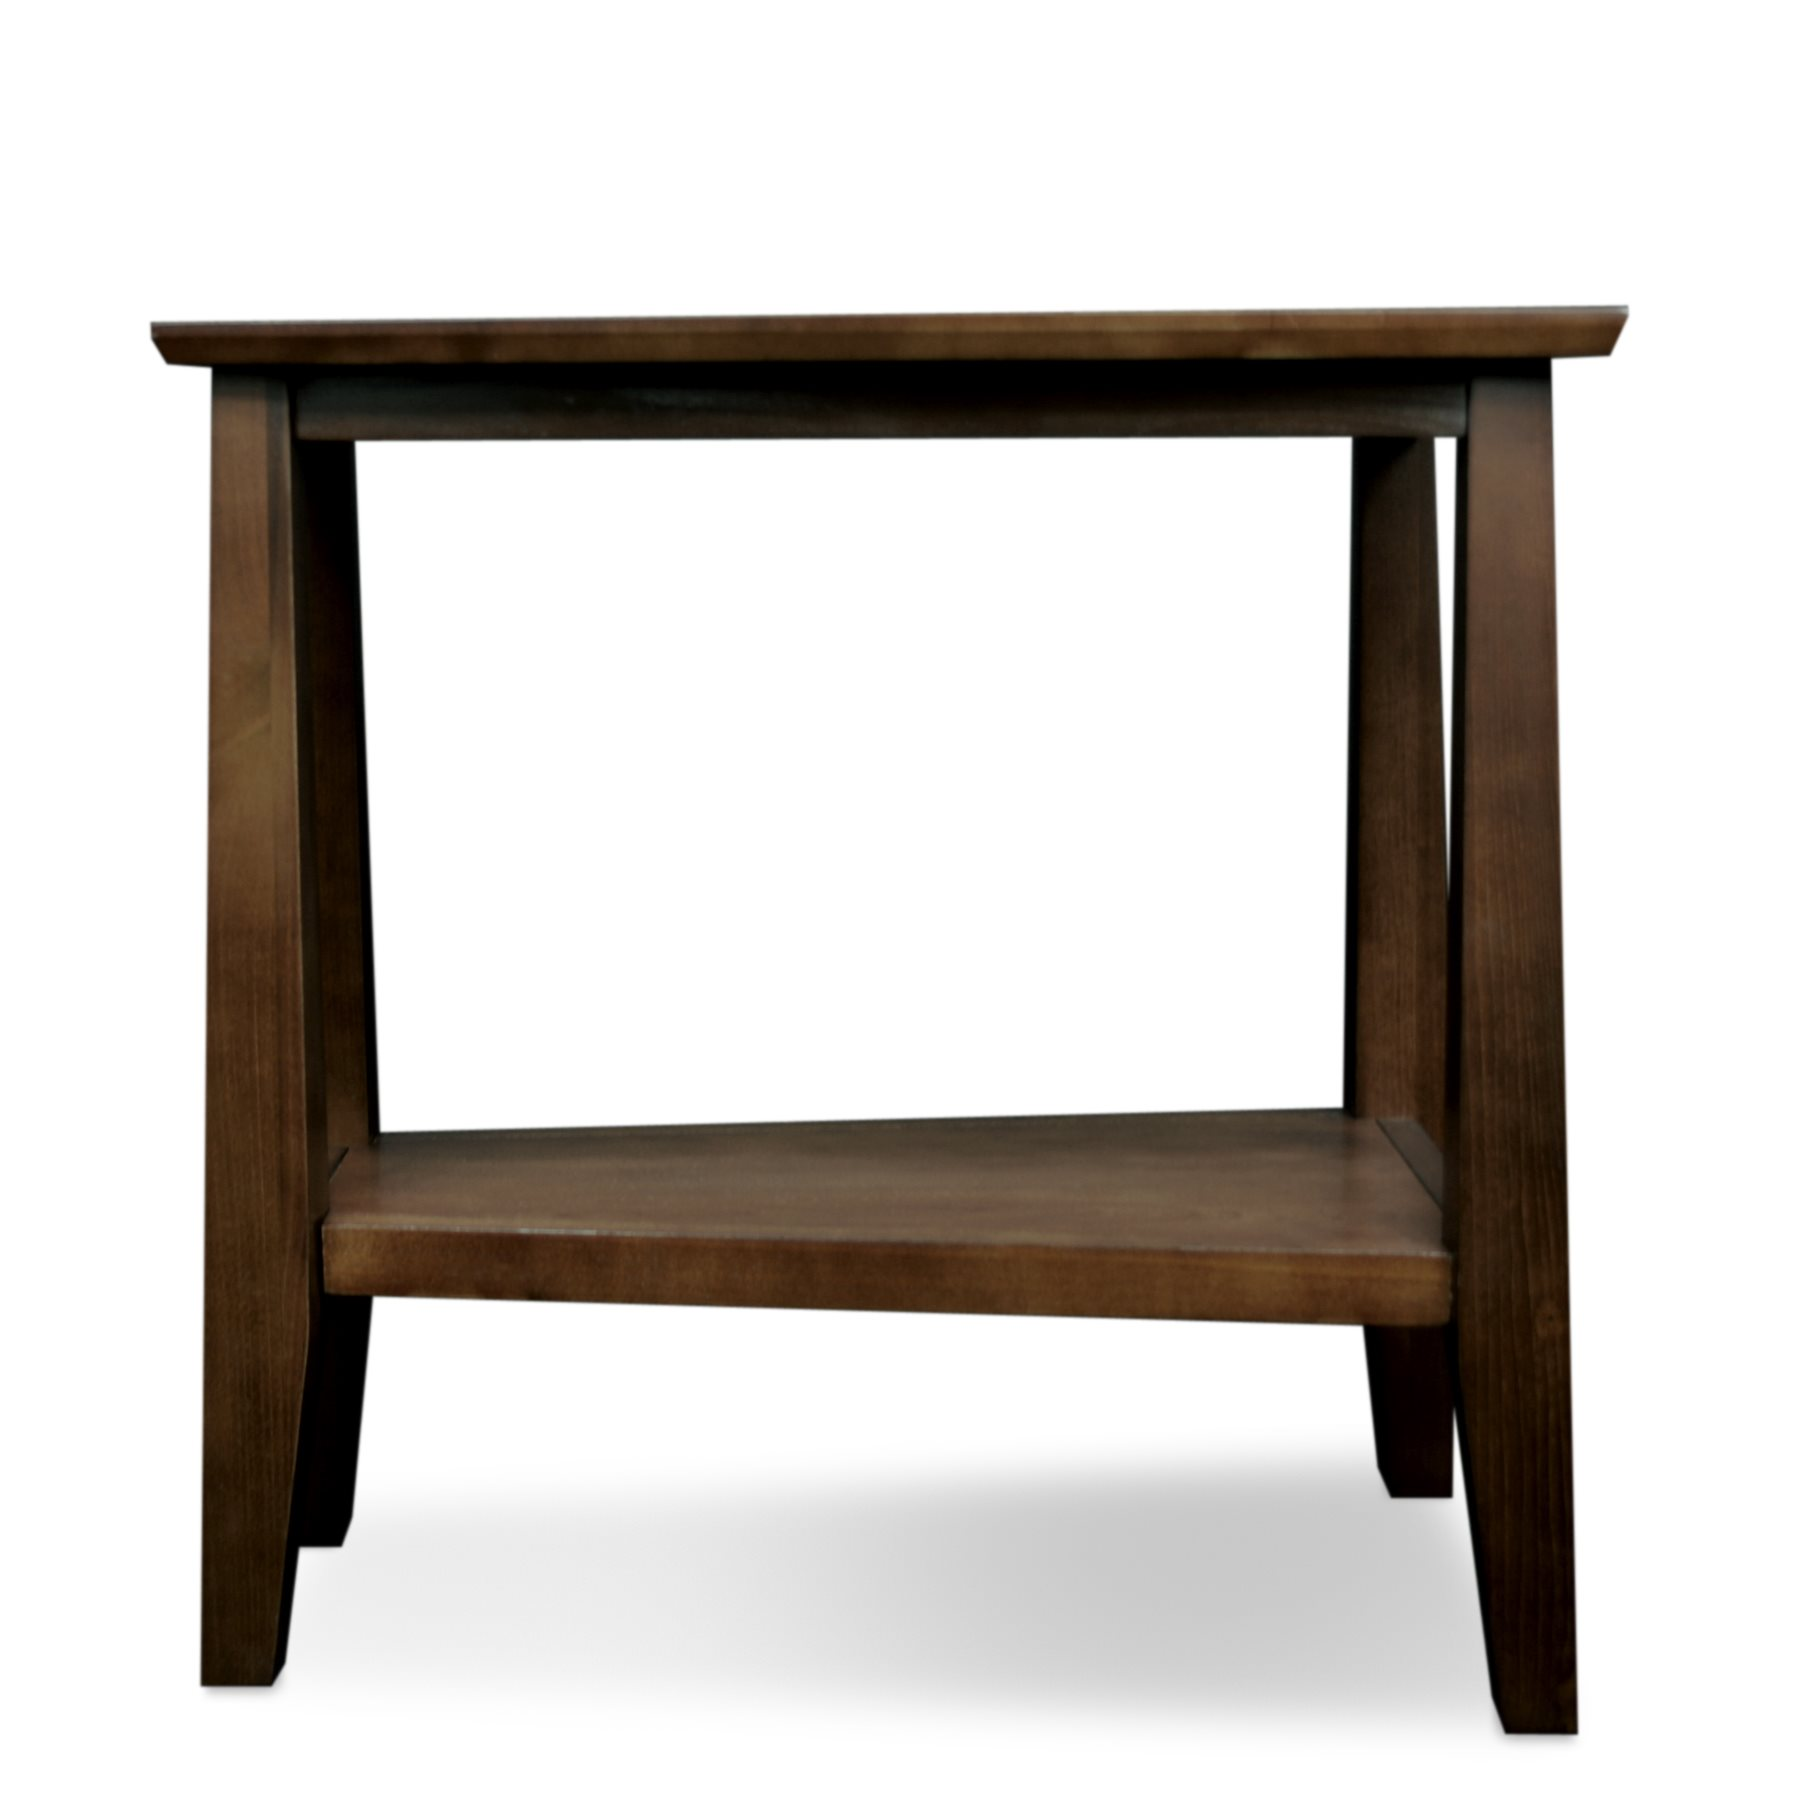 Leick Furniture Delton Sienna Recliner Wedge Table 10402